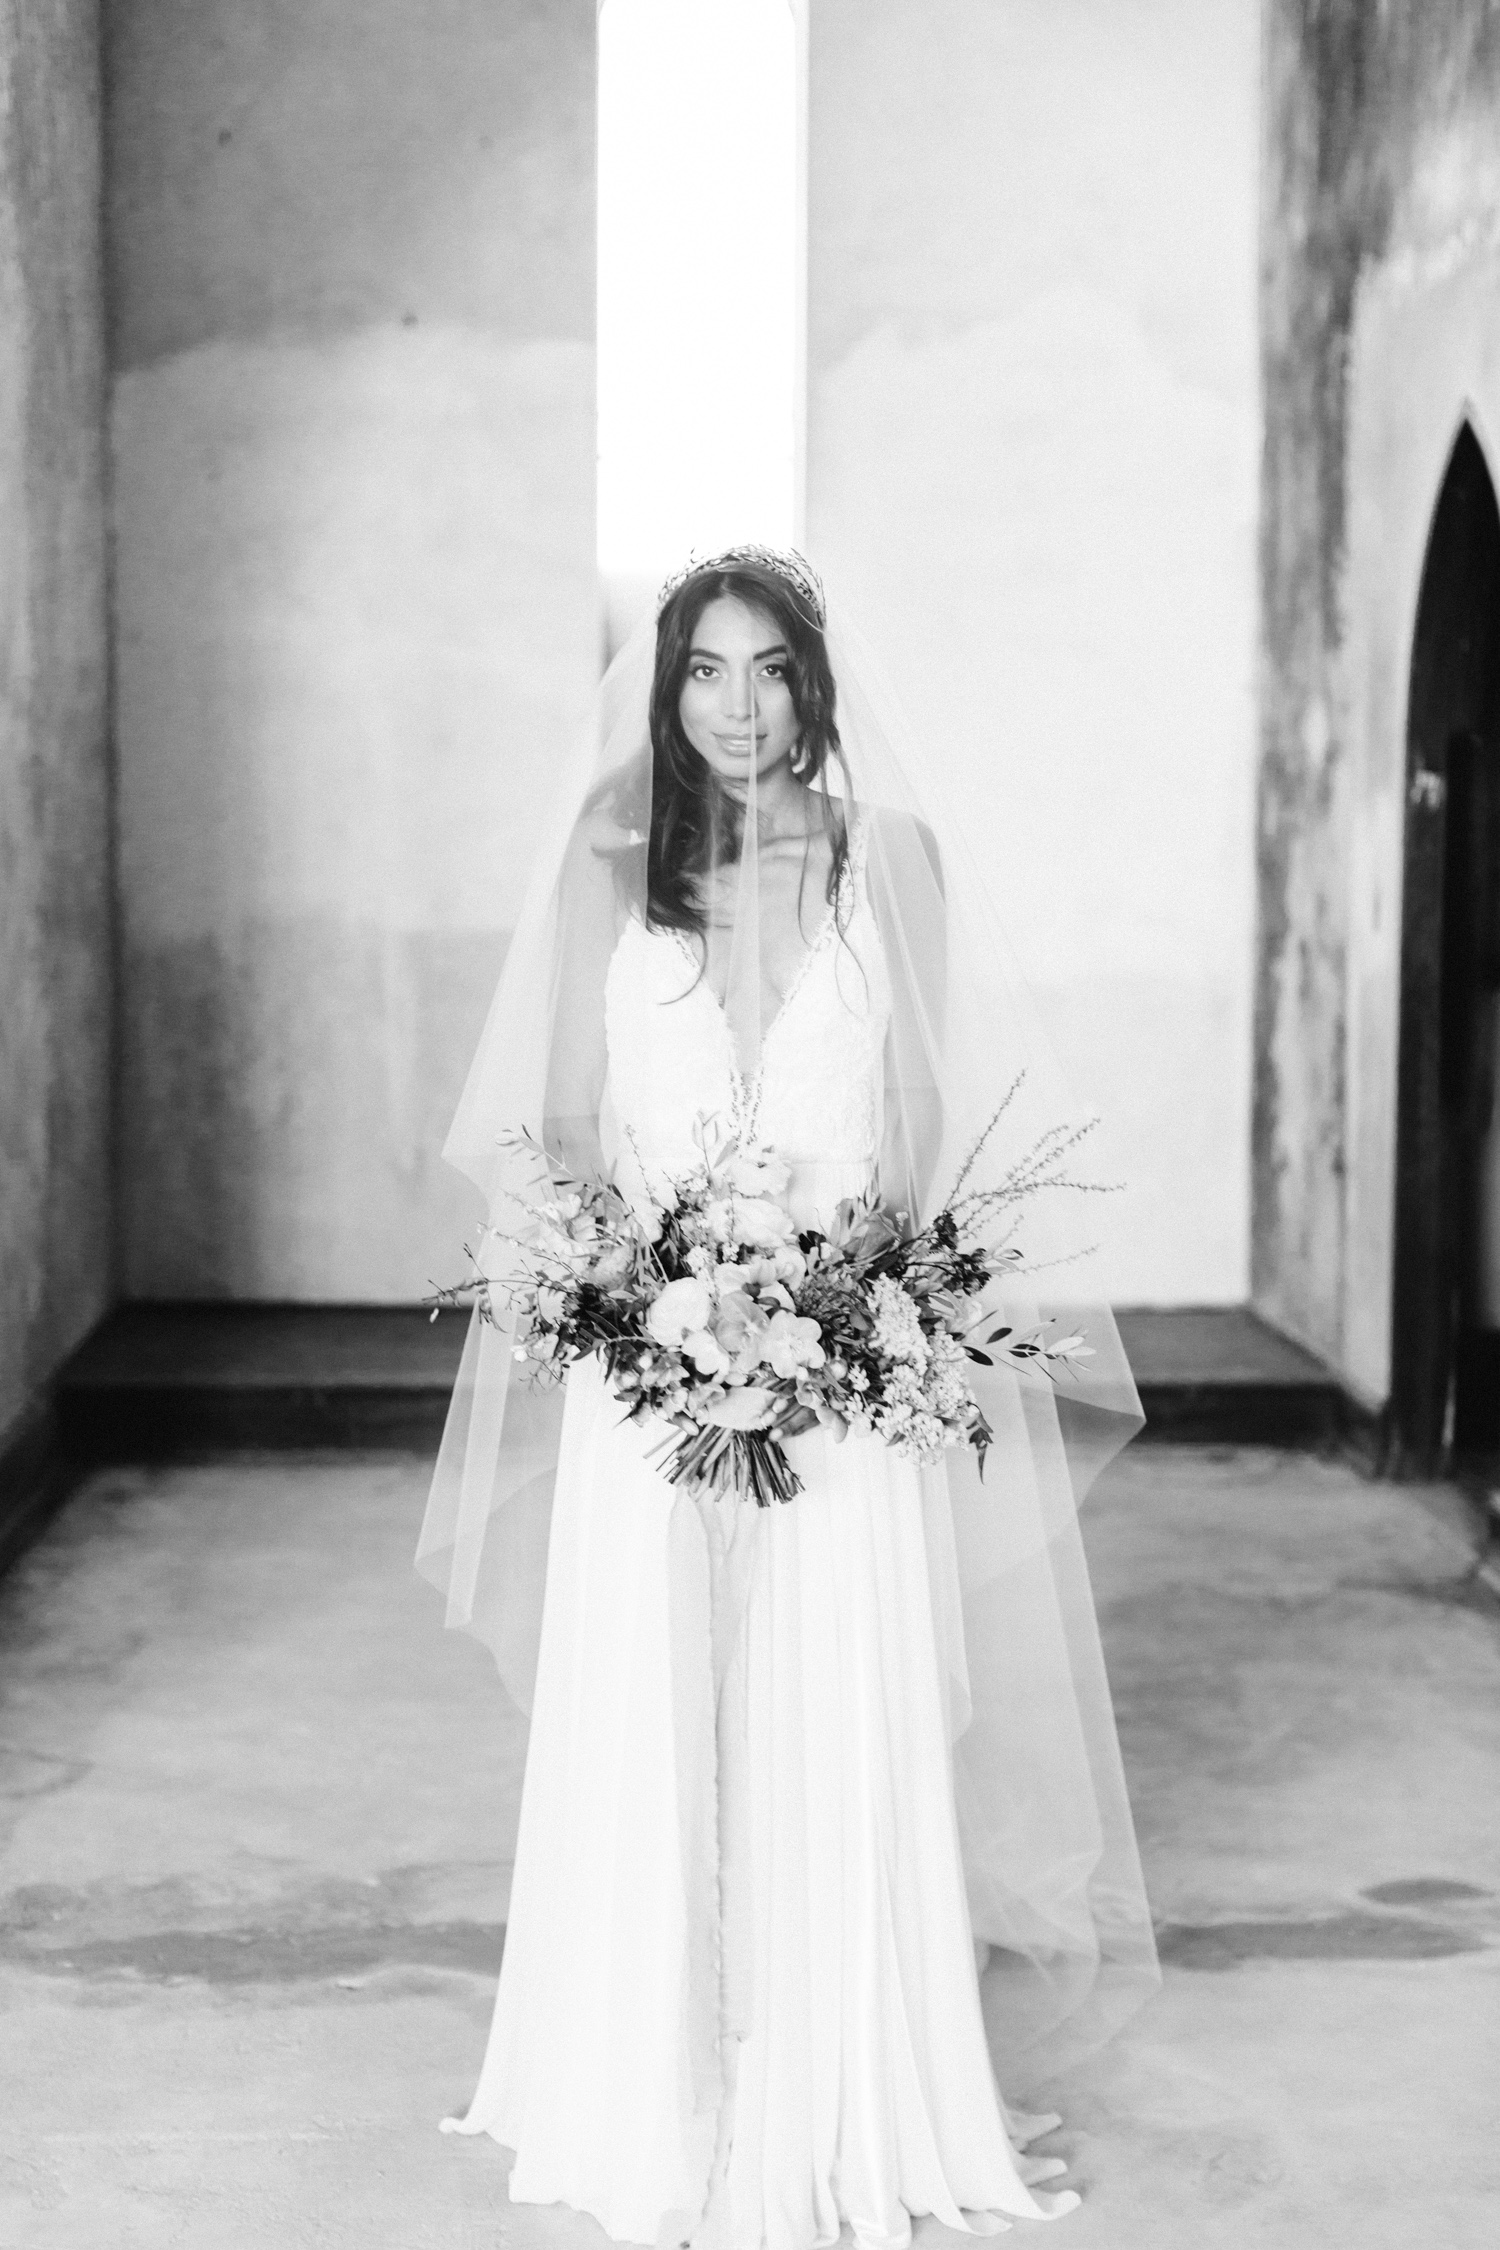 A bride with a bouquet and long veil at her destination wedding in an abandoned cathedral in Greece